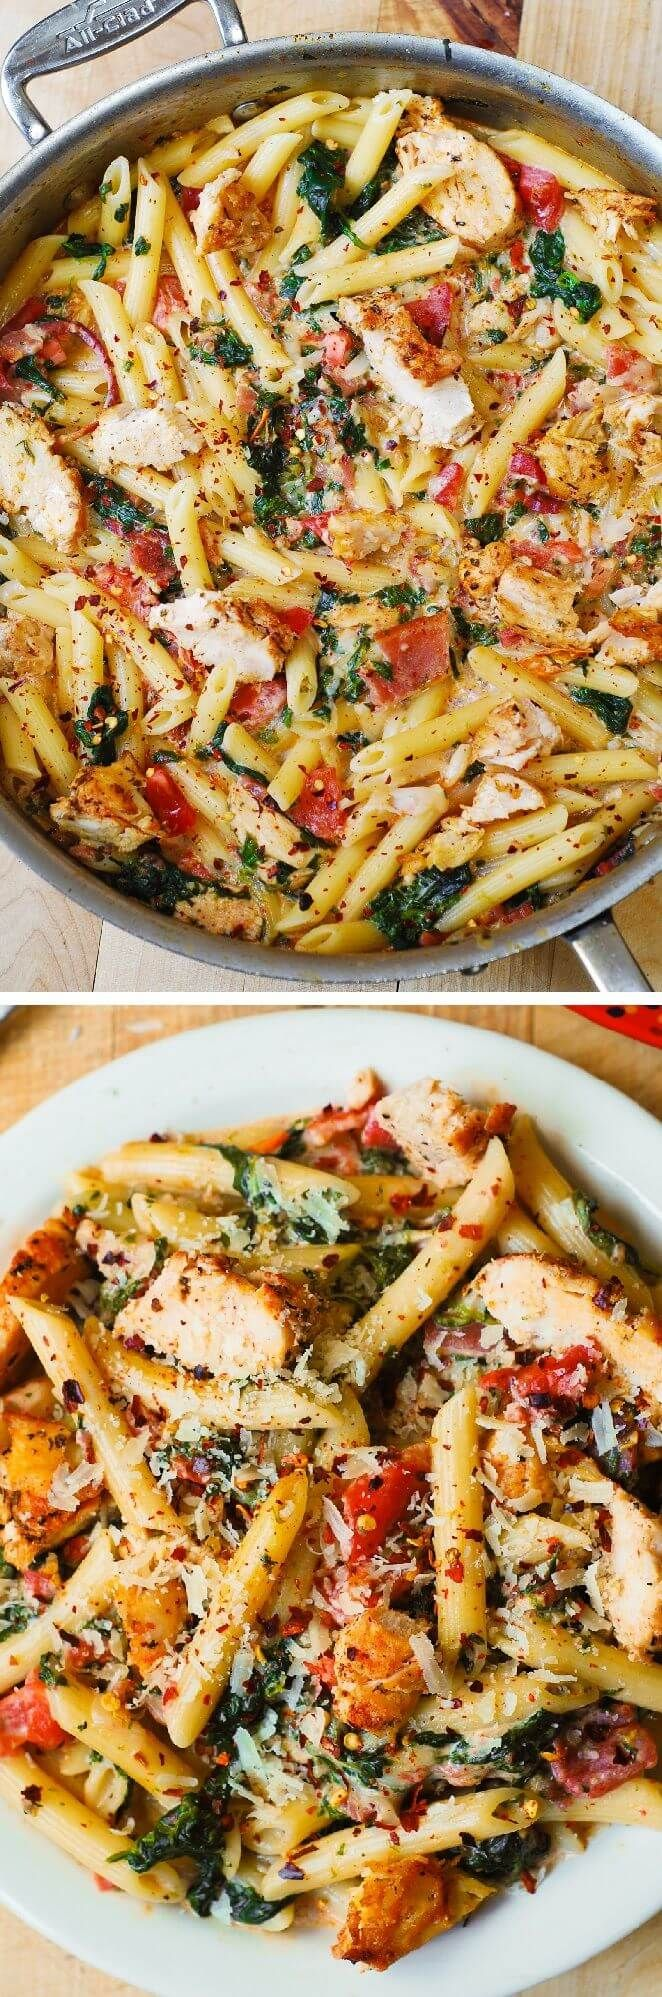 Chicken and Bacon Pasta with Spinach and Tomatoes in Garlic Cream Sauce @fayemason1